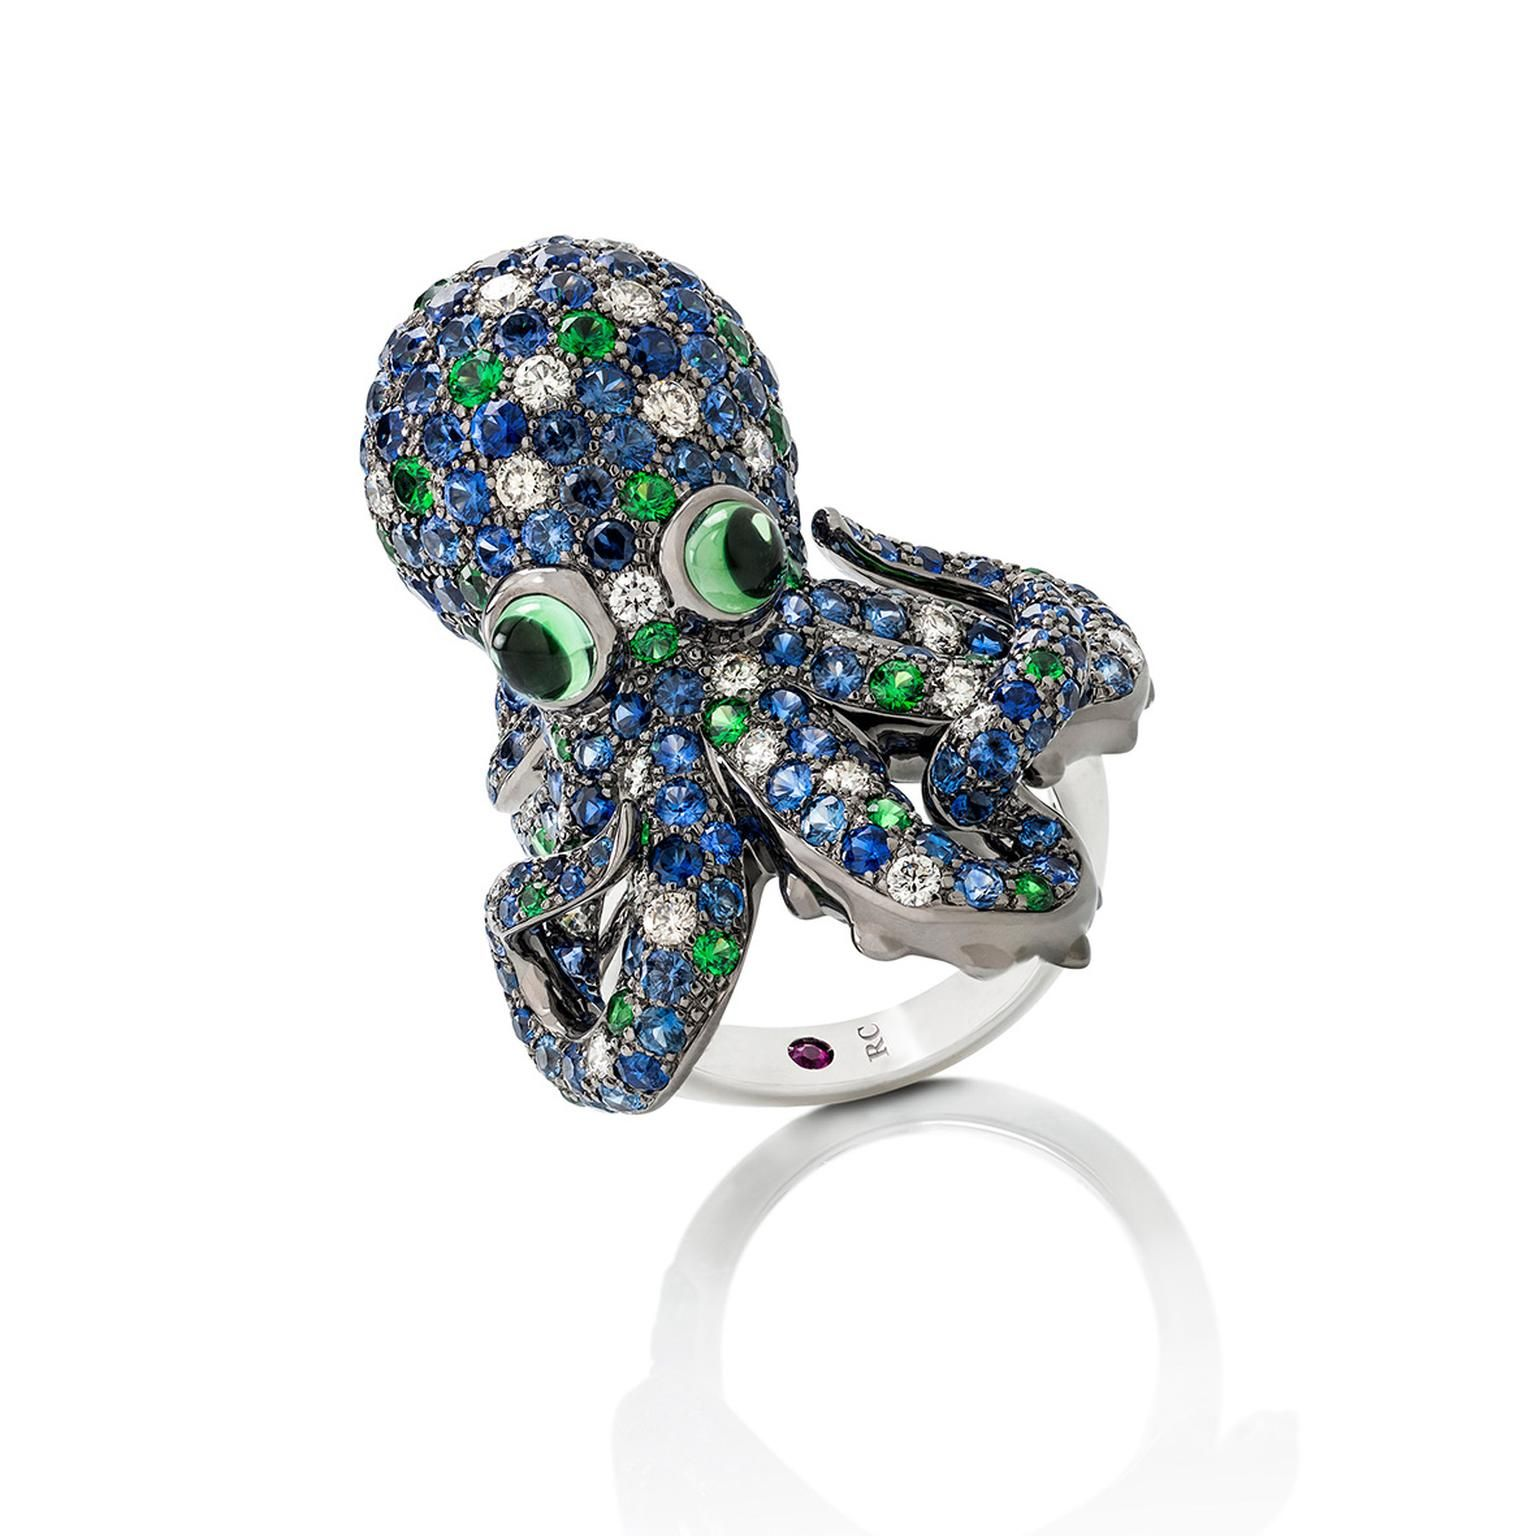 Roberto Coin Octopus ring, with blue sapphires, garnets, tourmalines and white diamonds creating the character on your finger. Blue and green. Very under the sea. The best fashion forward design jewellery moments from Baselworld 2017 on day 3: http://www.thejewelleryeditor.com/jewellery/top-5/baselworld-jewellery-day-three-highlights/ #jewelry